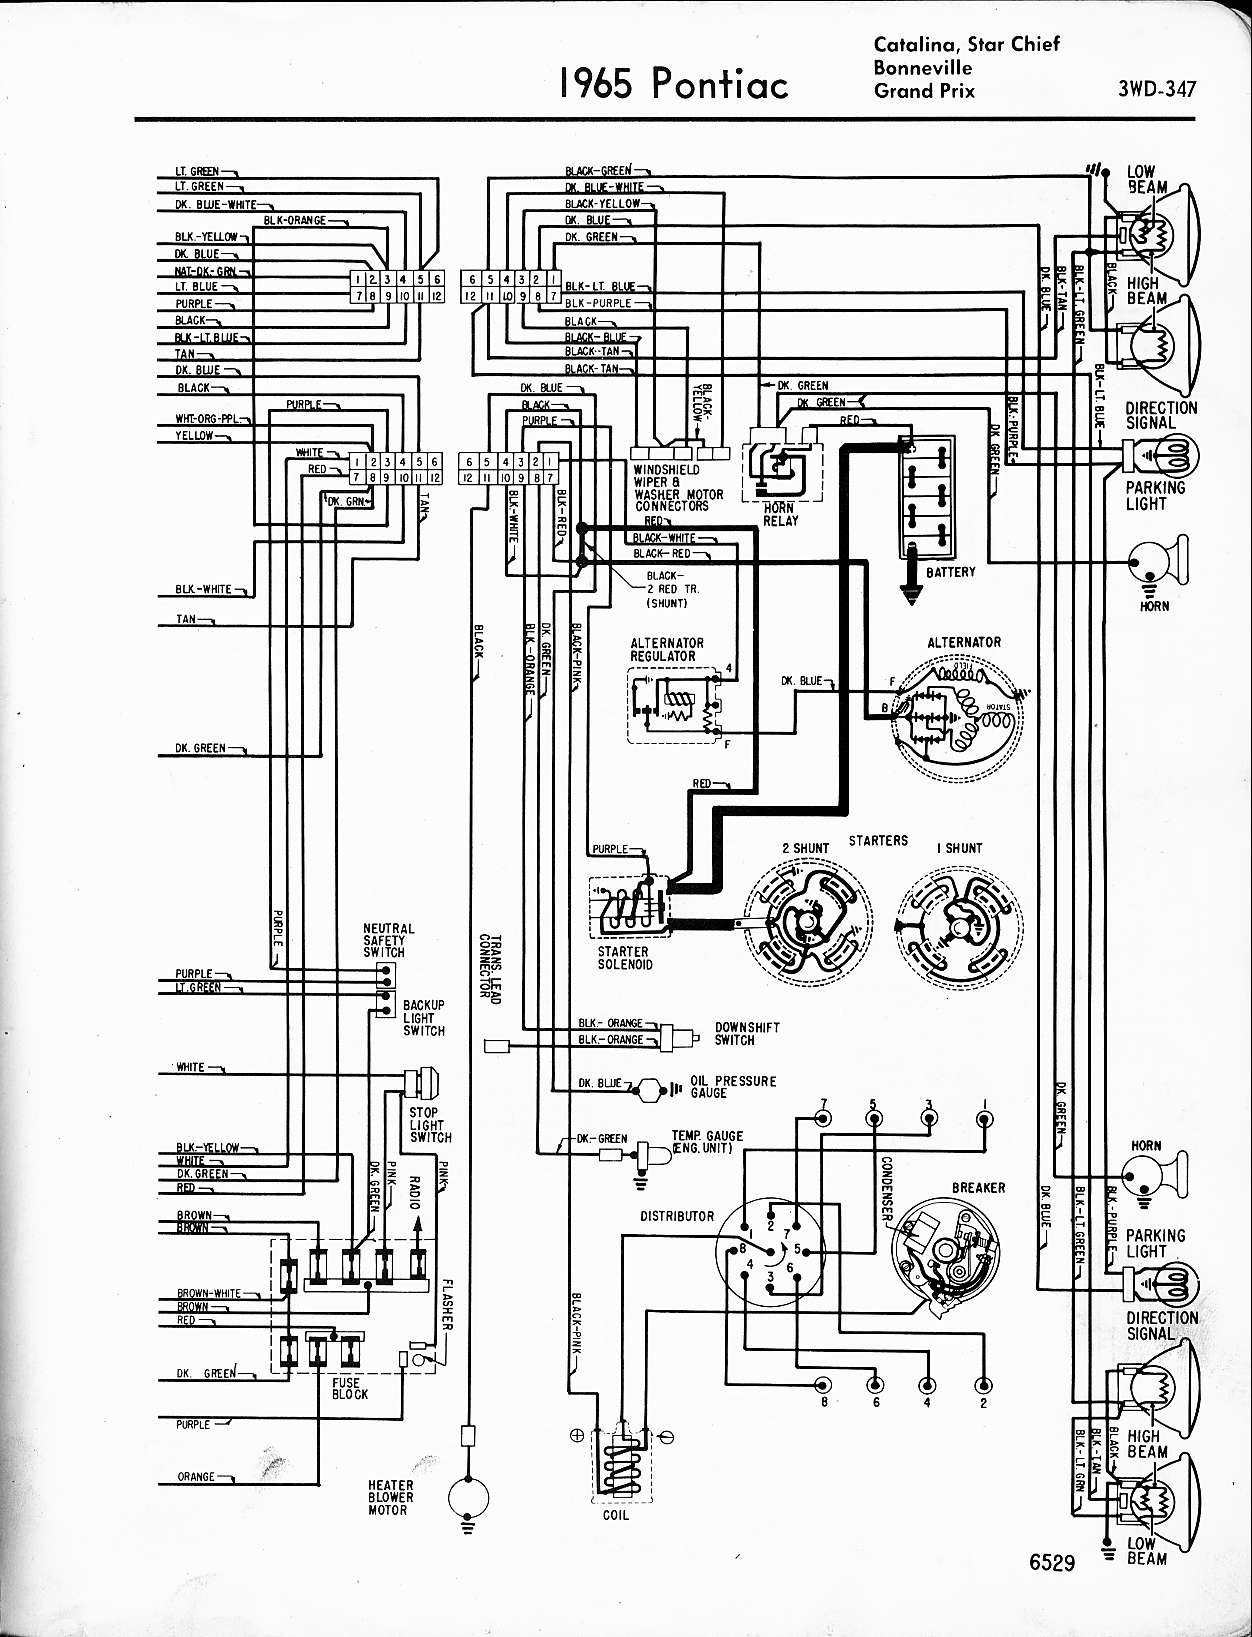 1965 pontiac gto wiring diagram wiring diagrams schematics rh quizzable co 65 gto wiring diagram schematic 65 gto wiring diagram schematic